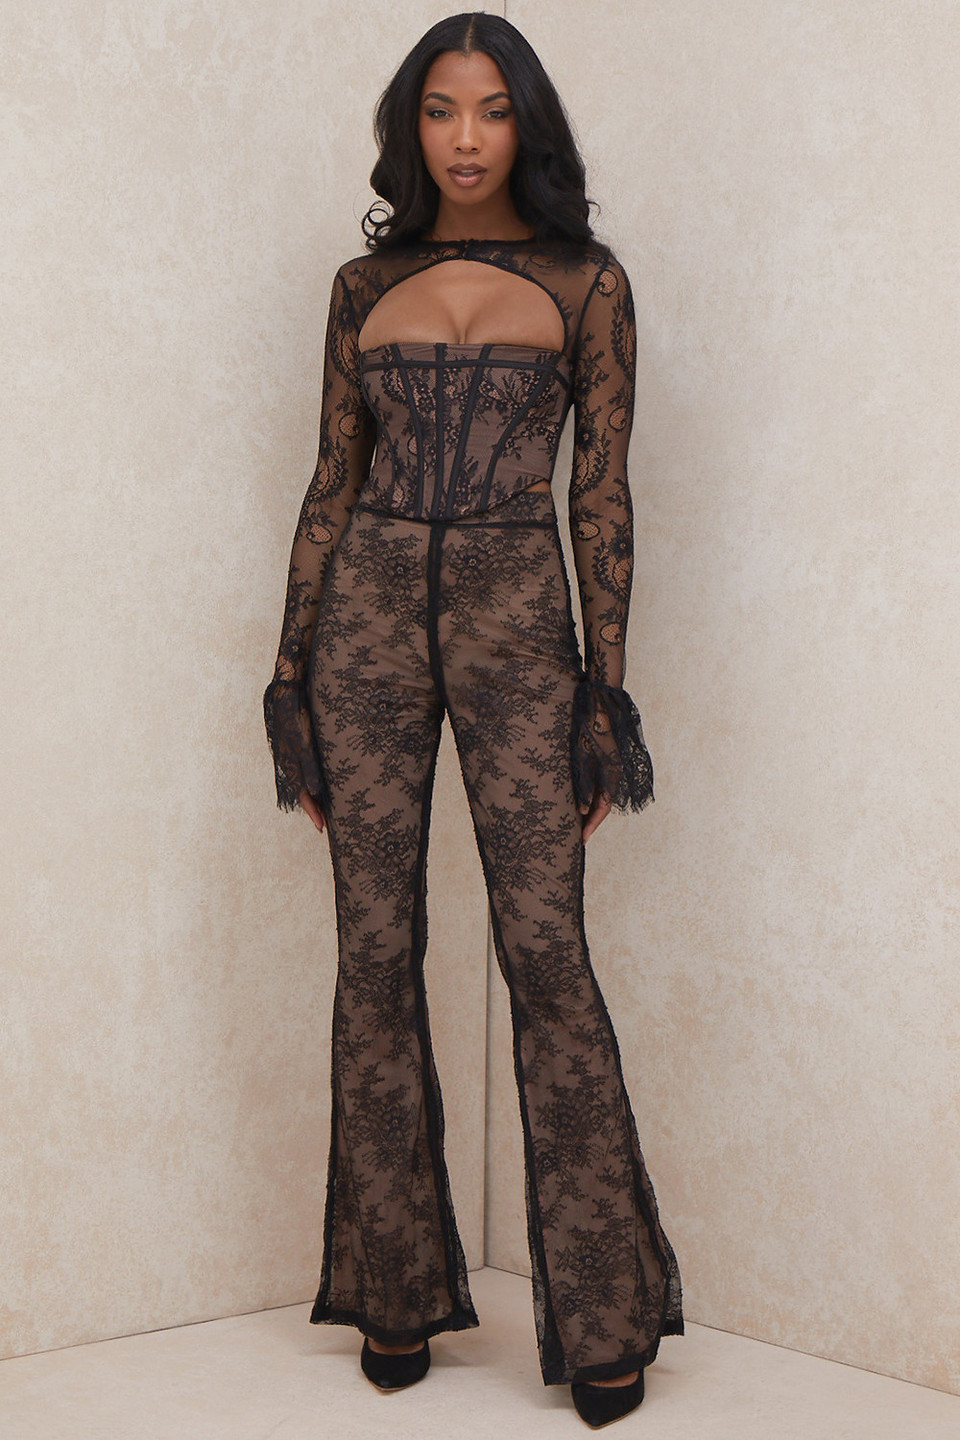 Ivy Black Lace High Waist Trousers